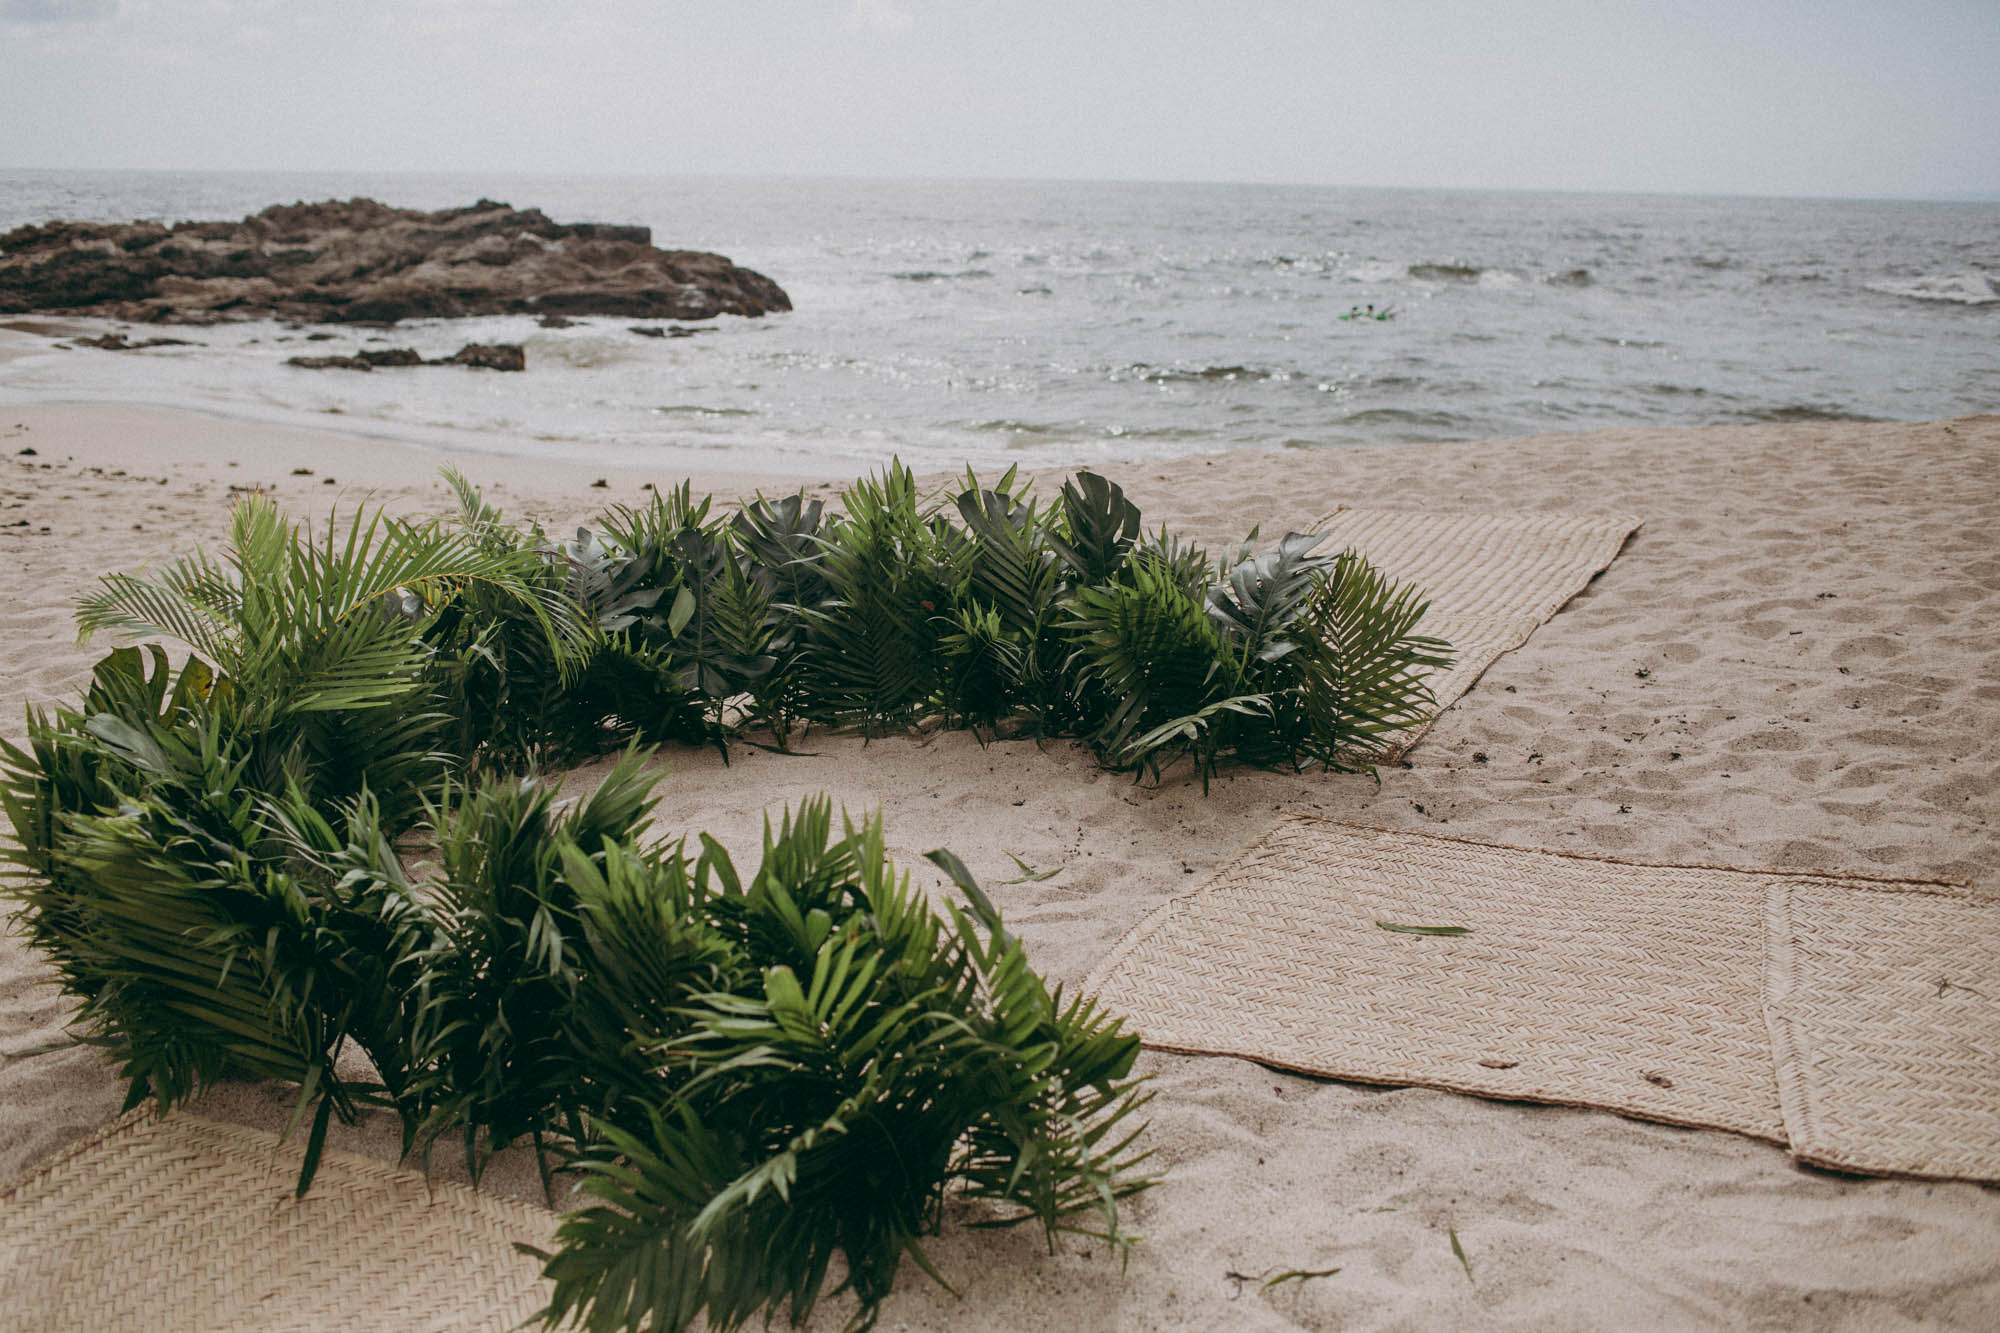 c_m_mexicowedding_destinationphotographer-29.jpg